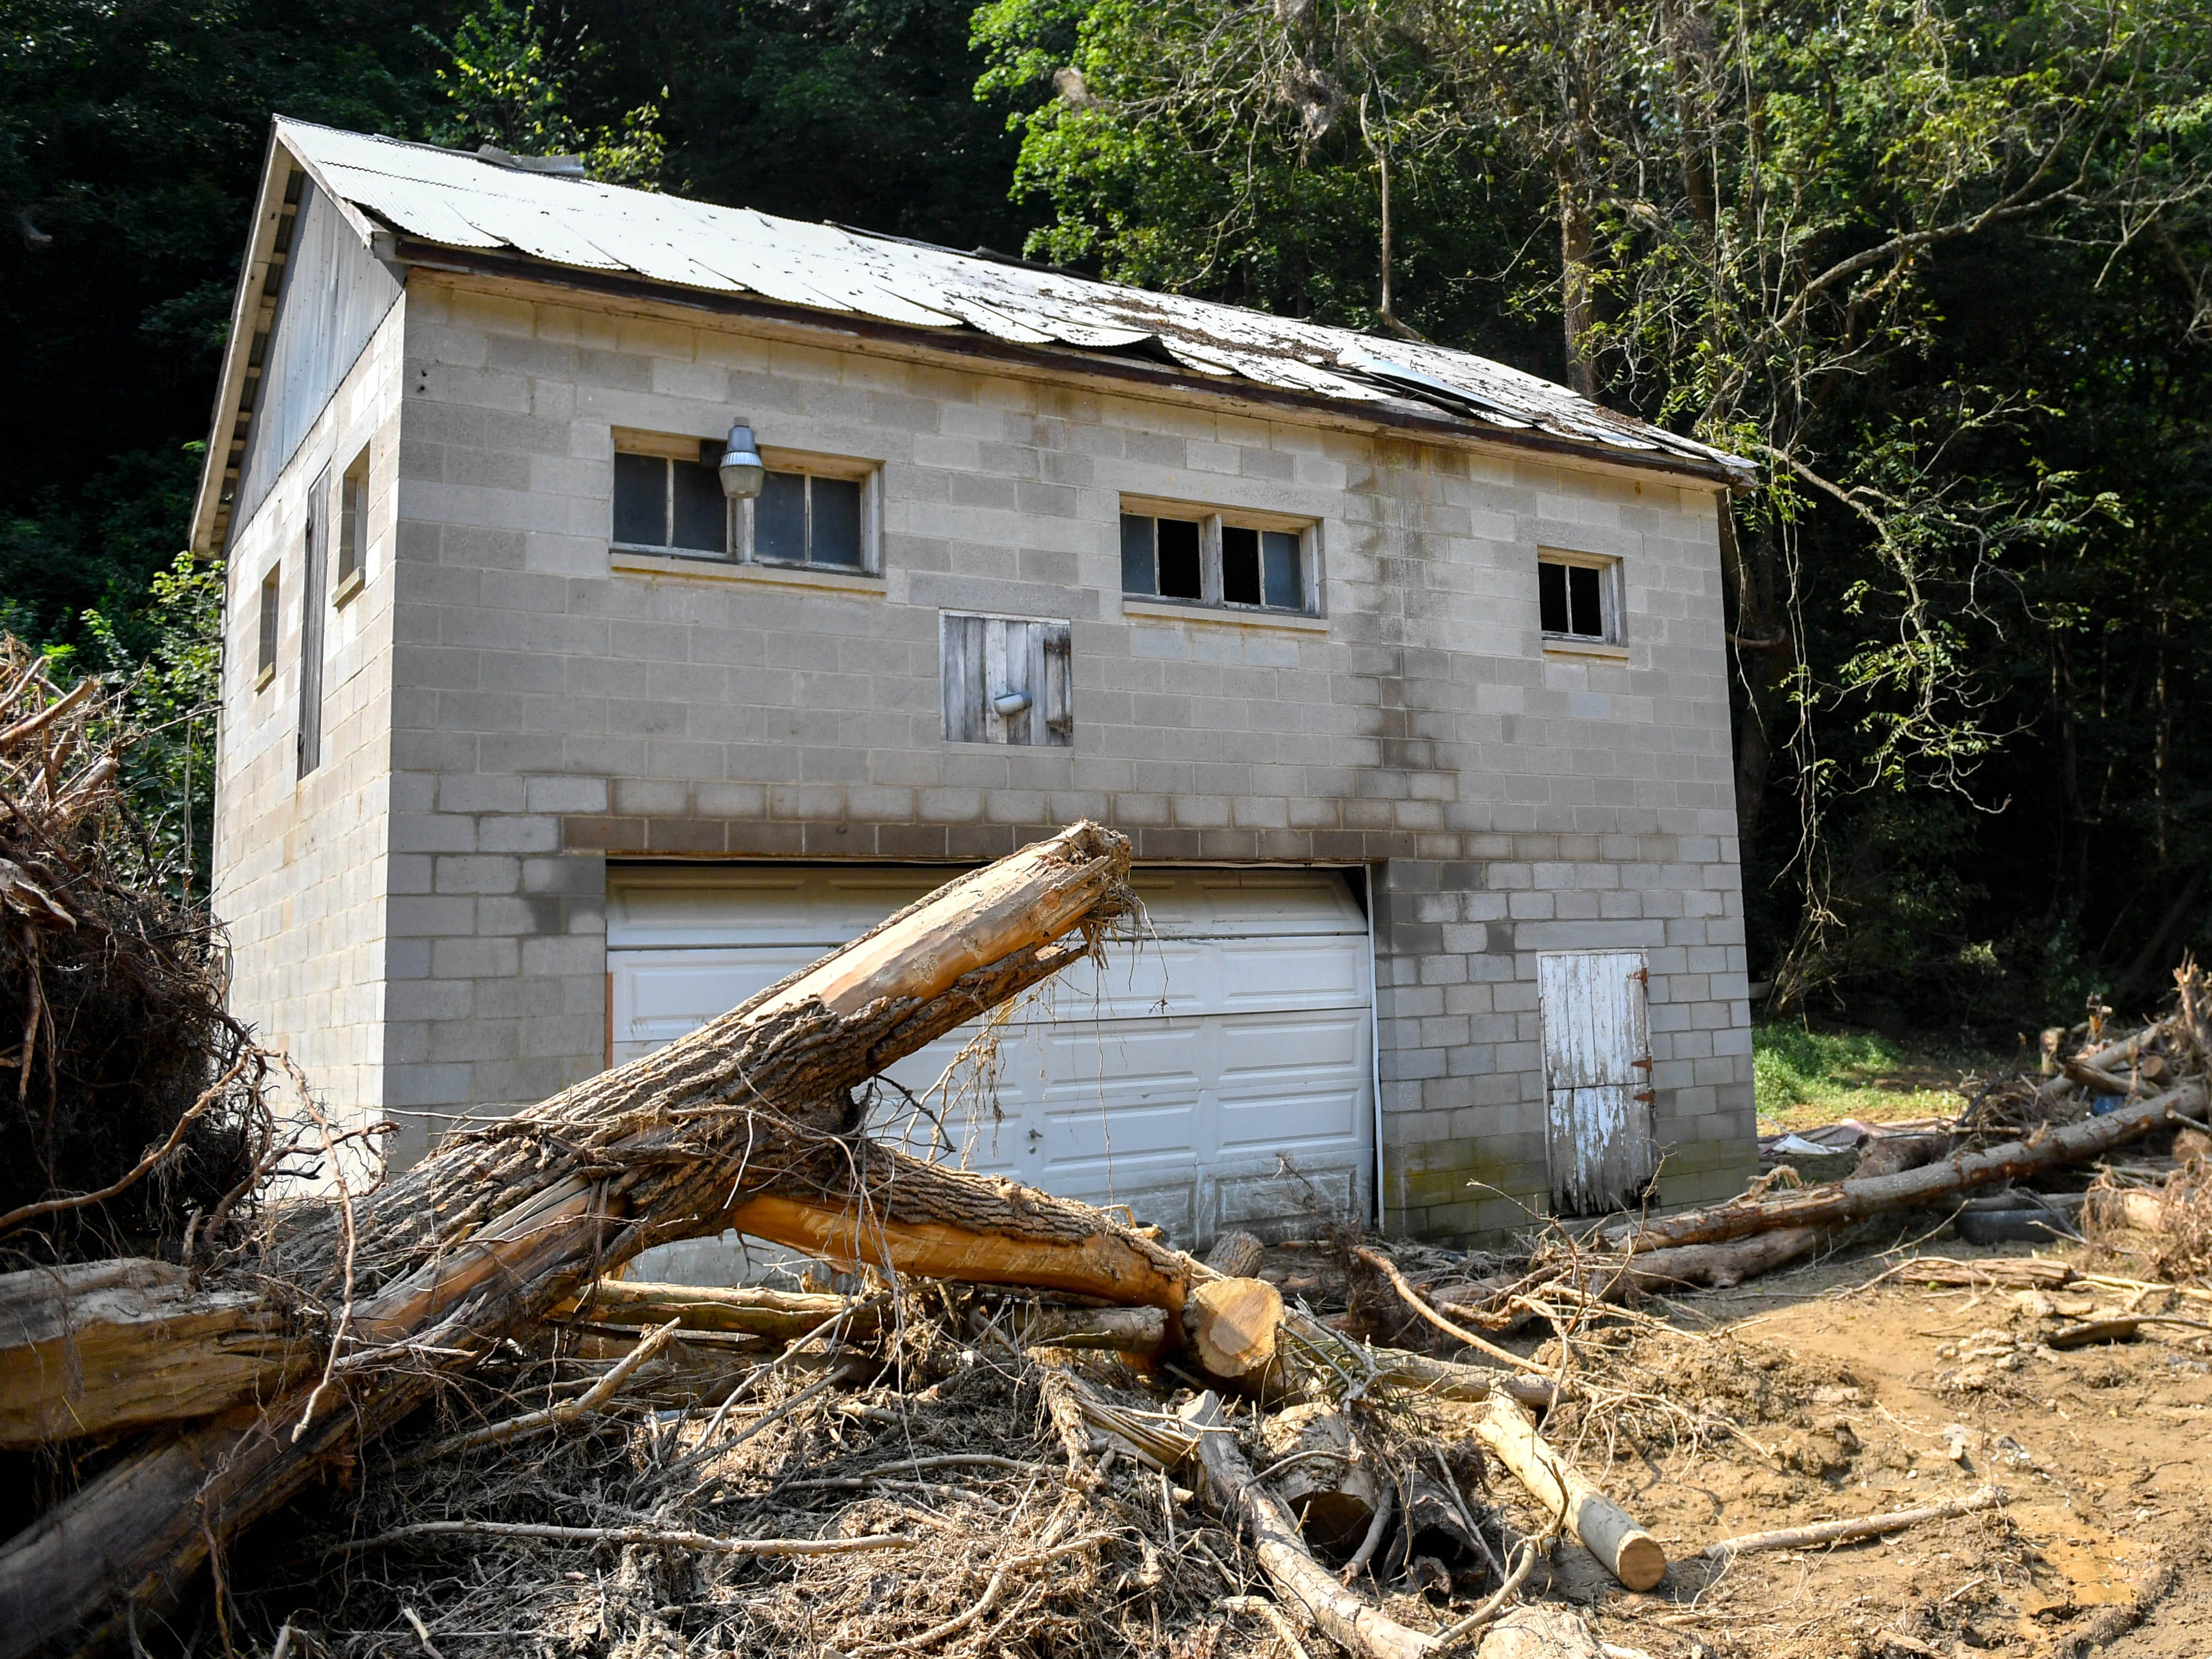 A house on Gum Tree Road has been ravaged by the recent flooding in York County.